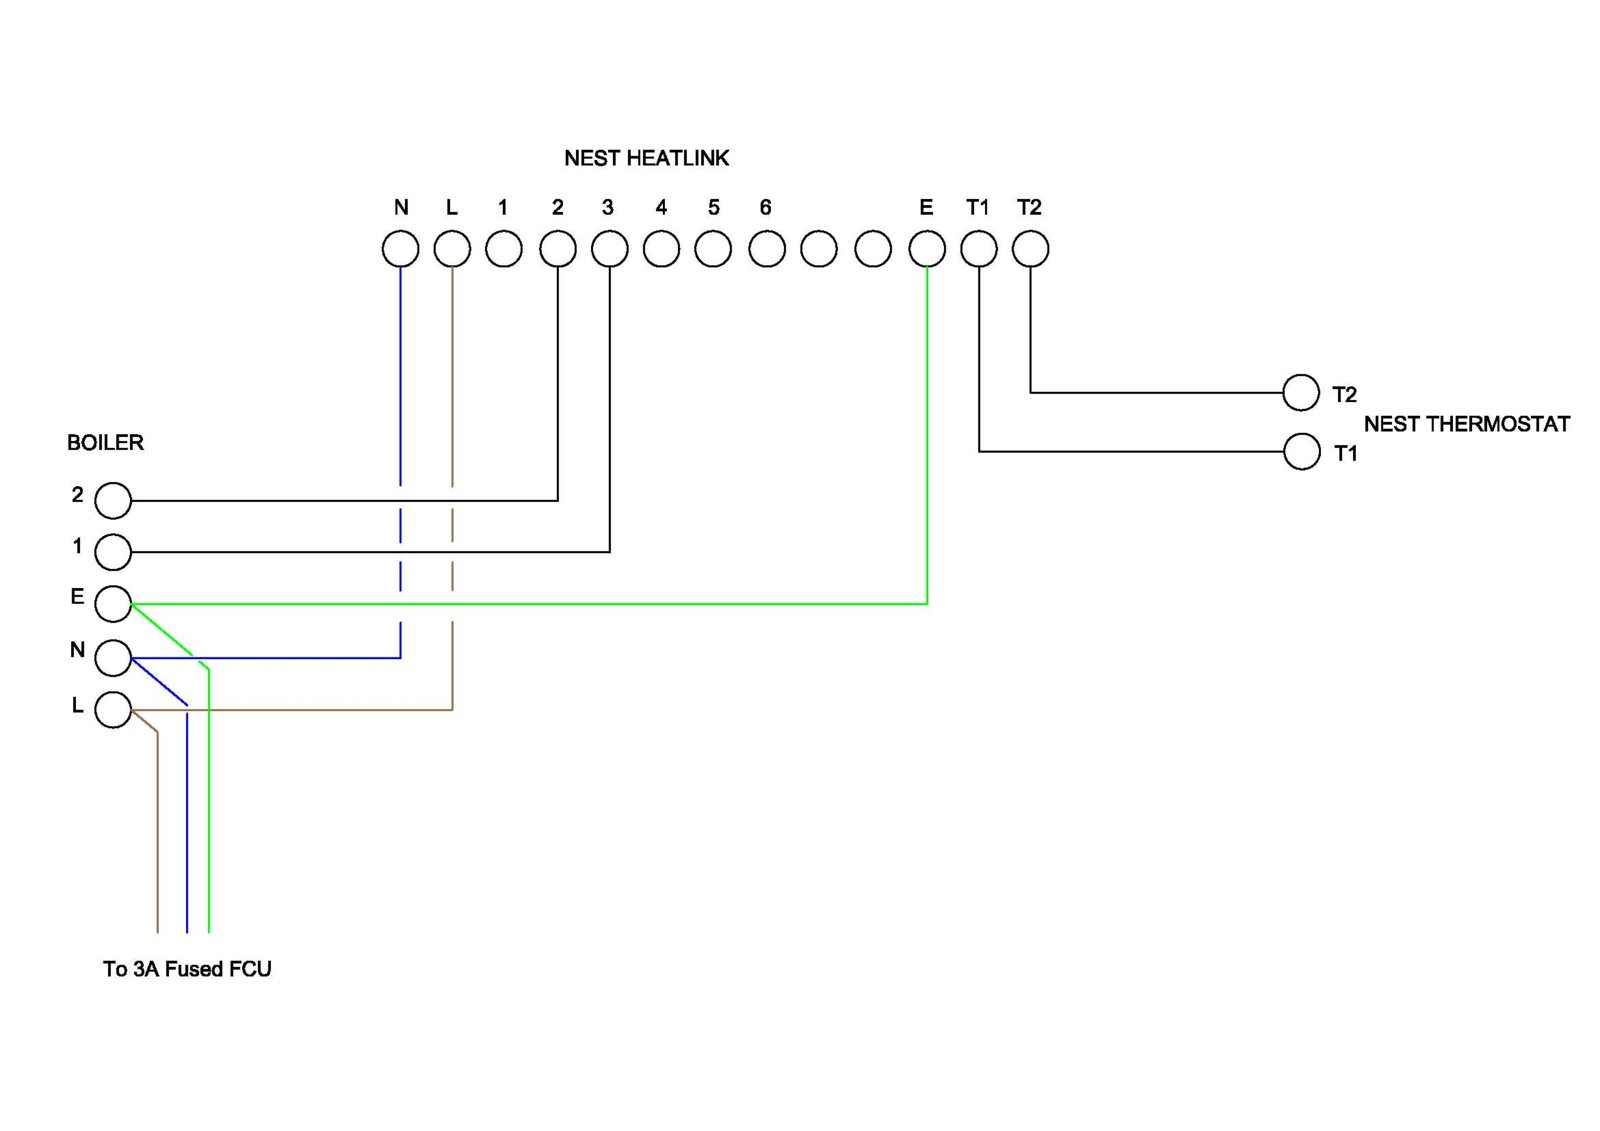 Swapping A Alpha Thermostat For Nest 3rd Generation Boilers Wiring Diagrams Diynot Forums